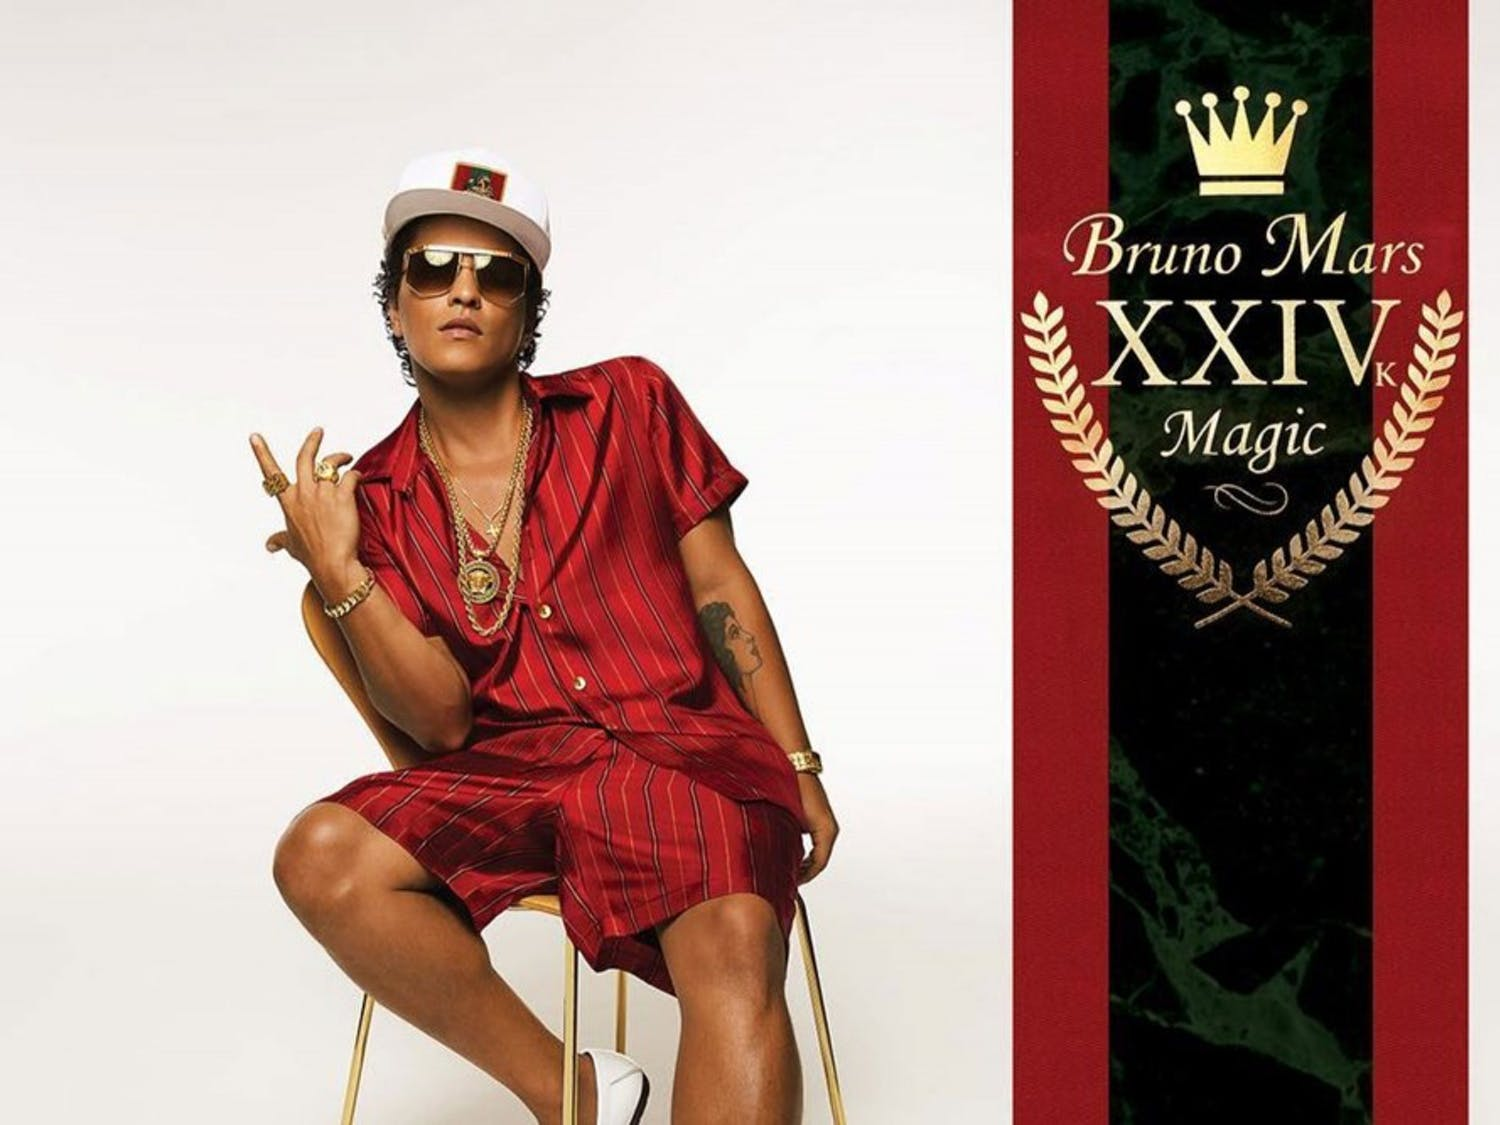 """Bruno Mars """"24k Magic"""" was released on Nov. 18. The album shows a new side of Mars with heavy funk influence anda more soulful sound."""